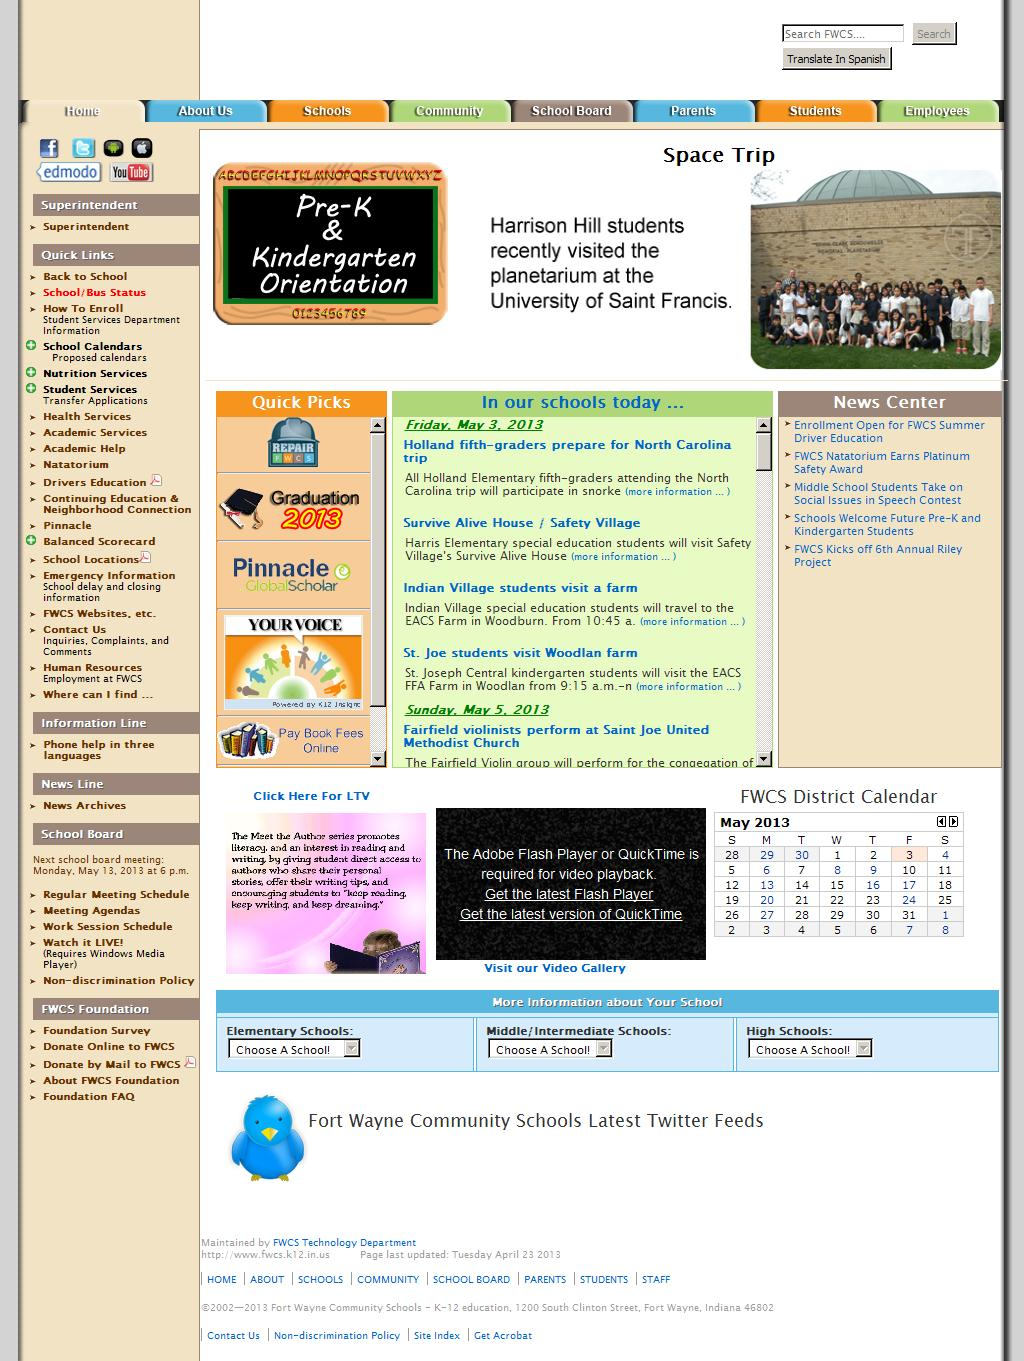 Fort Wayne Community Schools - Home Page